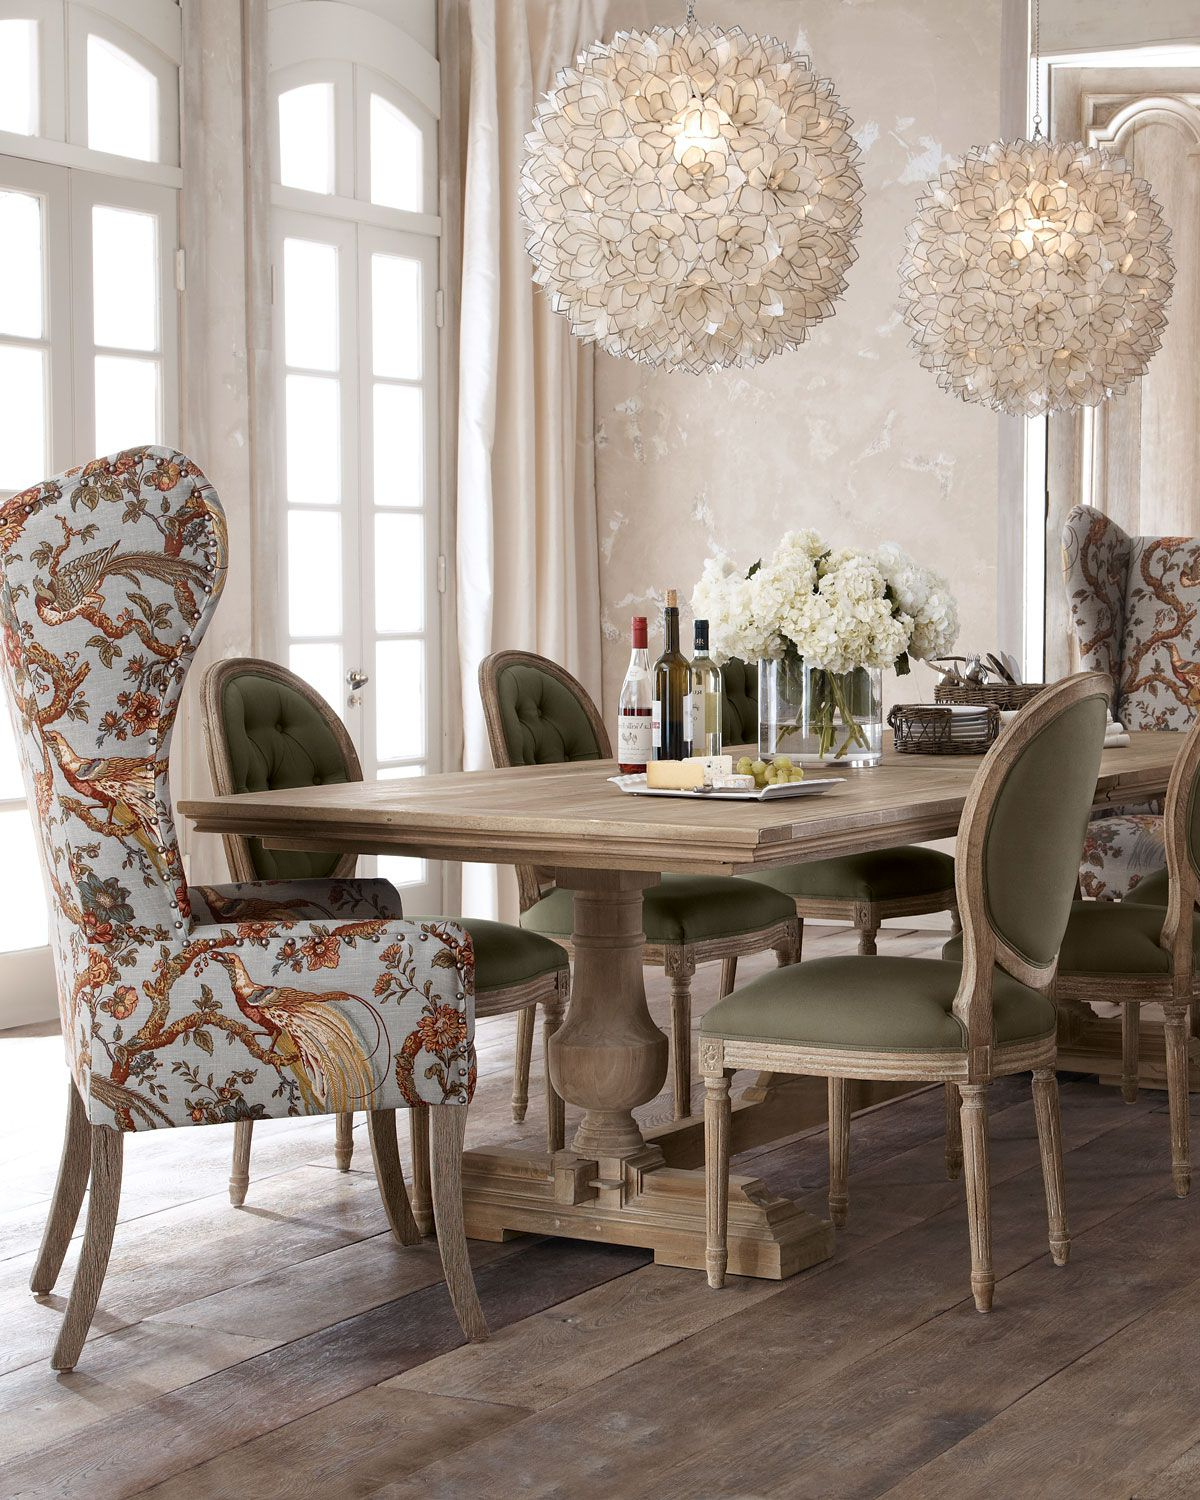 "Evelyn"" Dining Table, ""blanchett"" Side Chair, And ""pheasant"" Host With Regard To Chari Media Center Tables (View 3 of 20)"